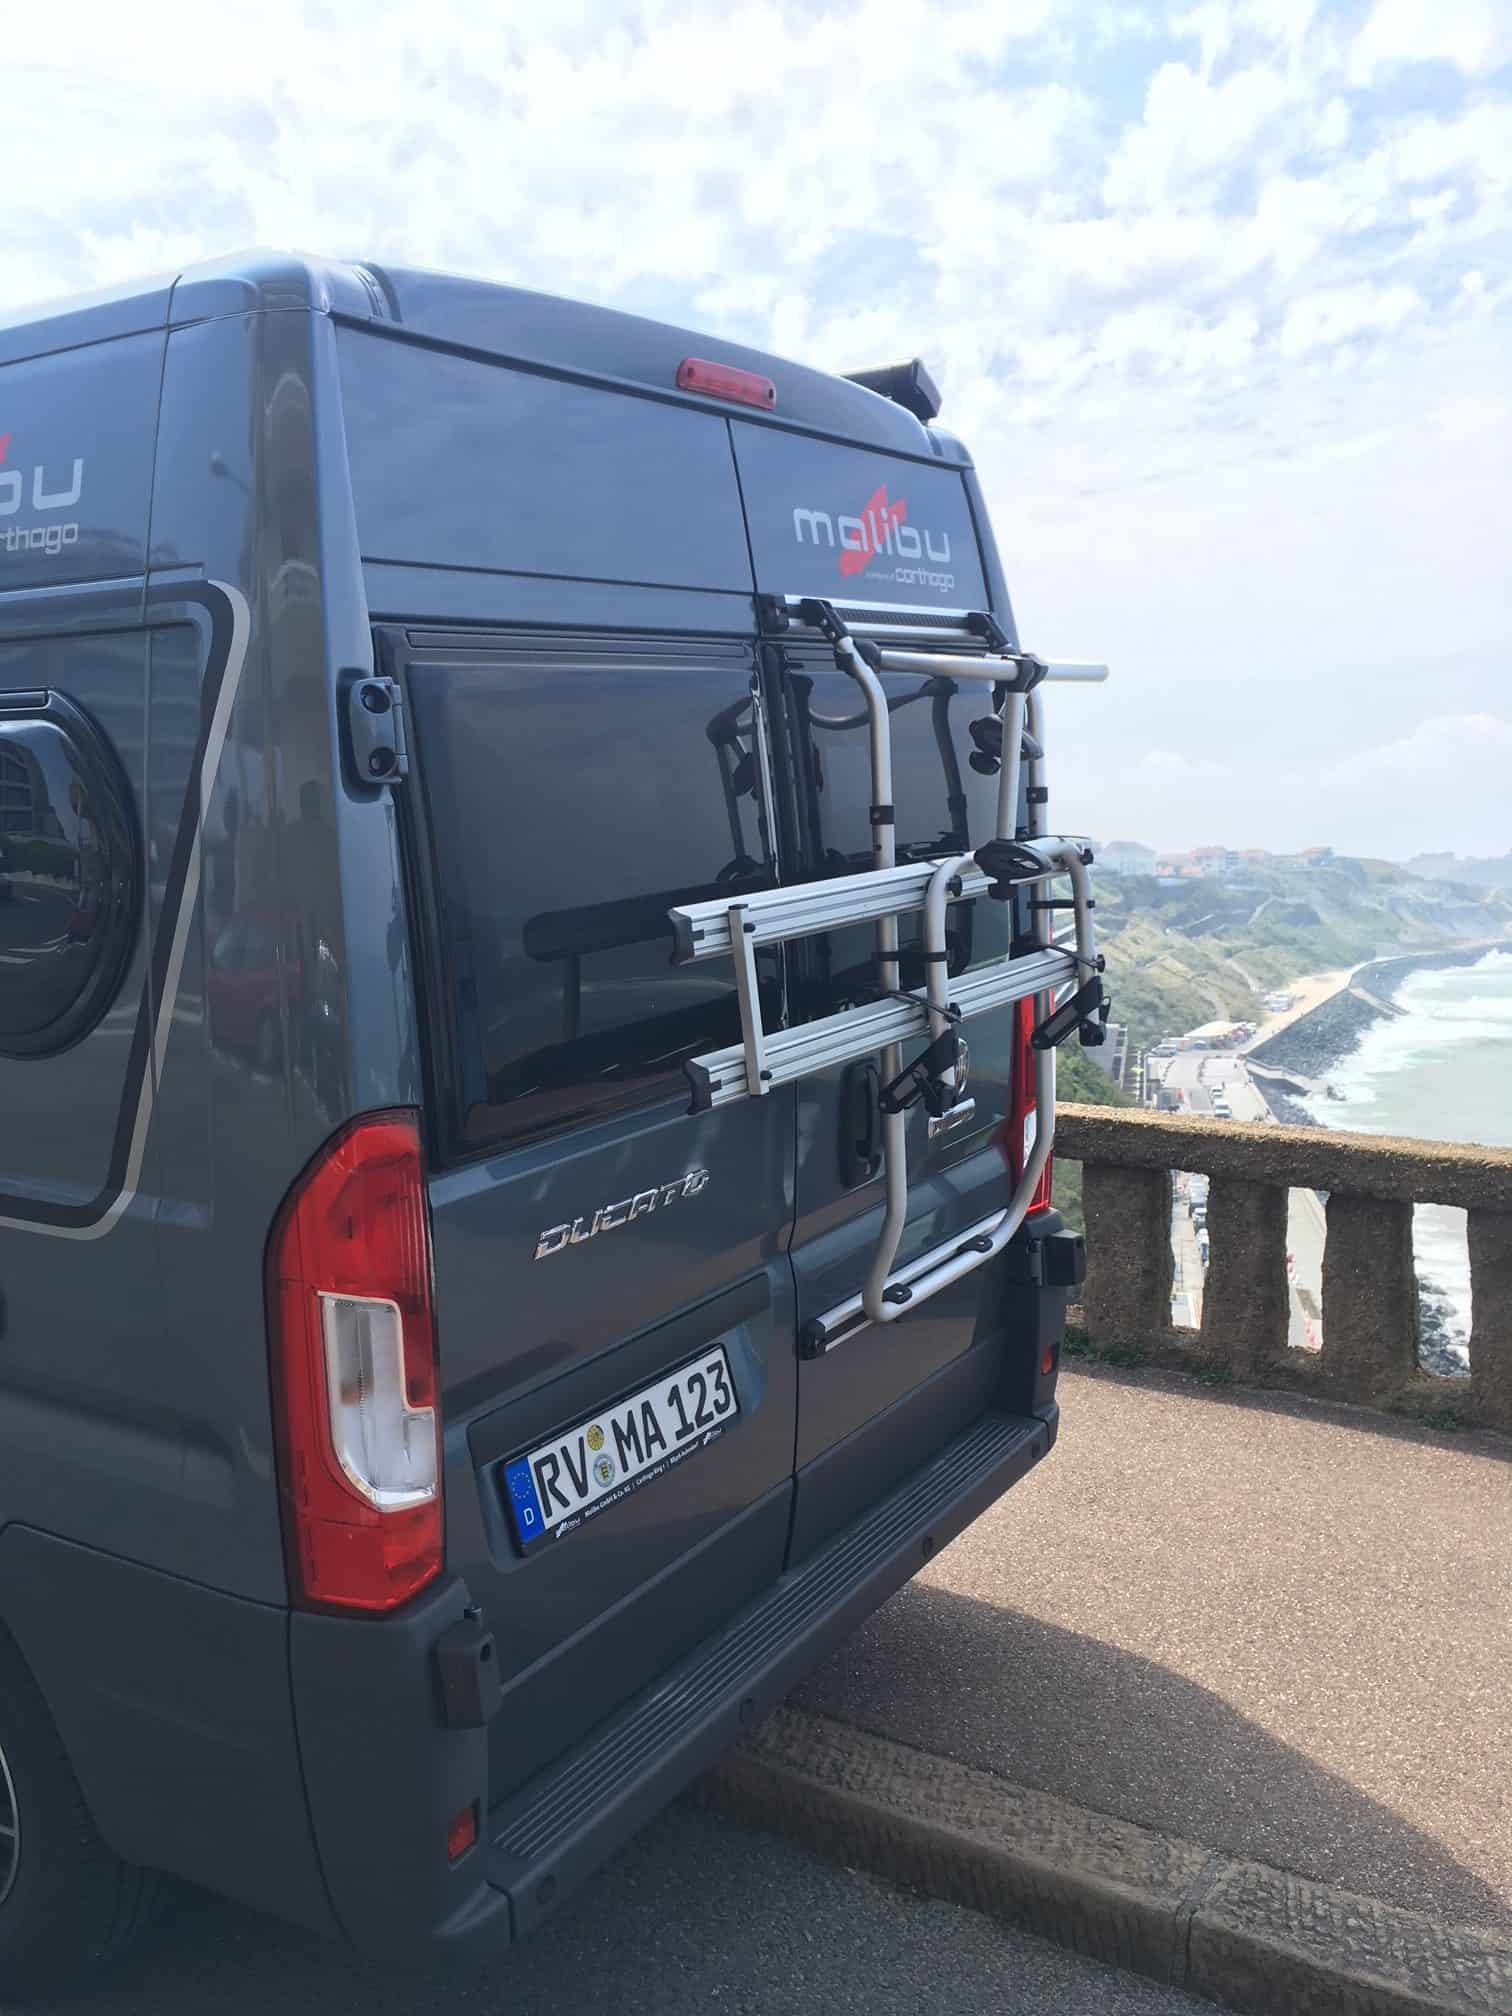 Malibu Van 600 DB by Carthago